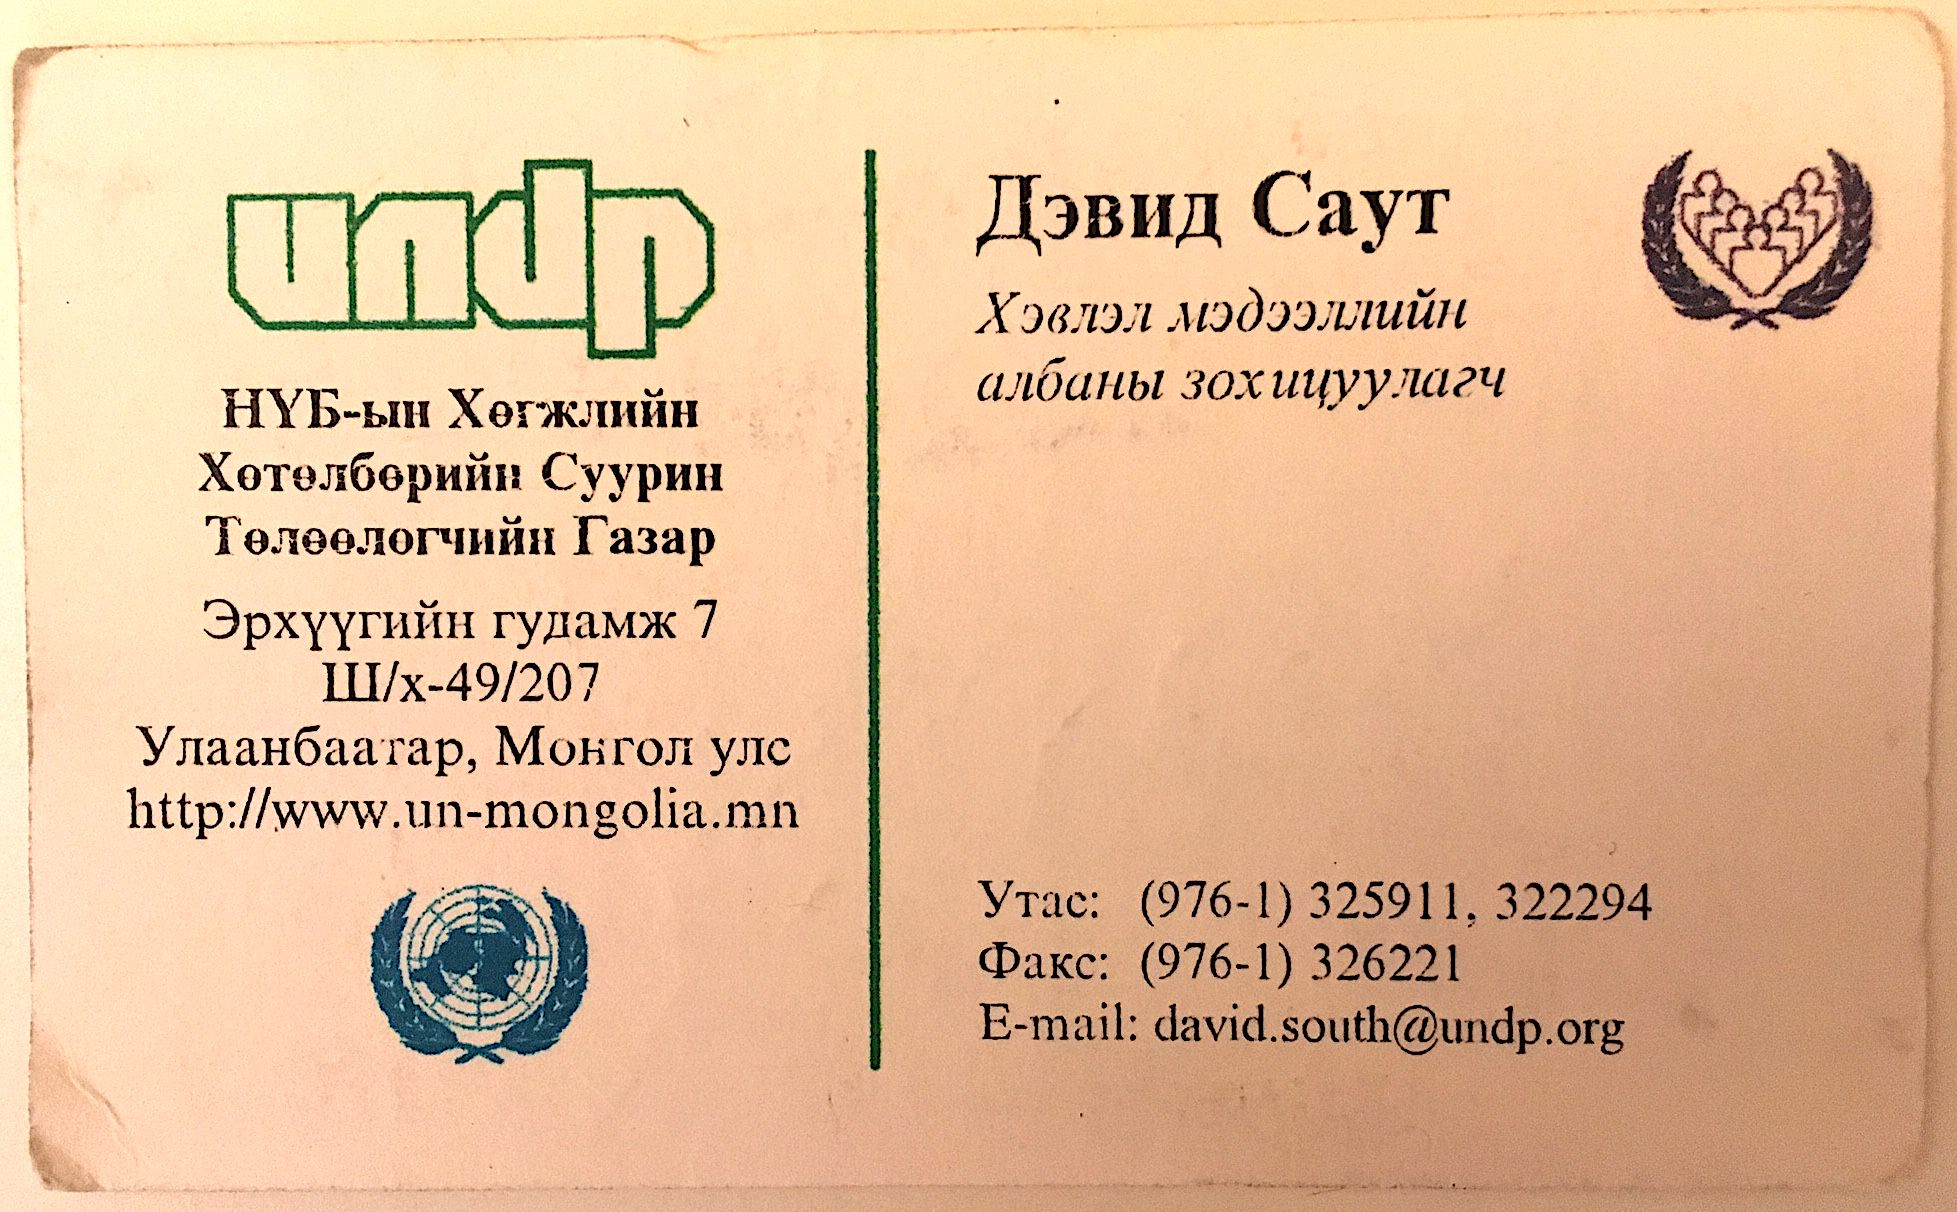 UNDP Mongolia business card 1997